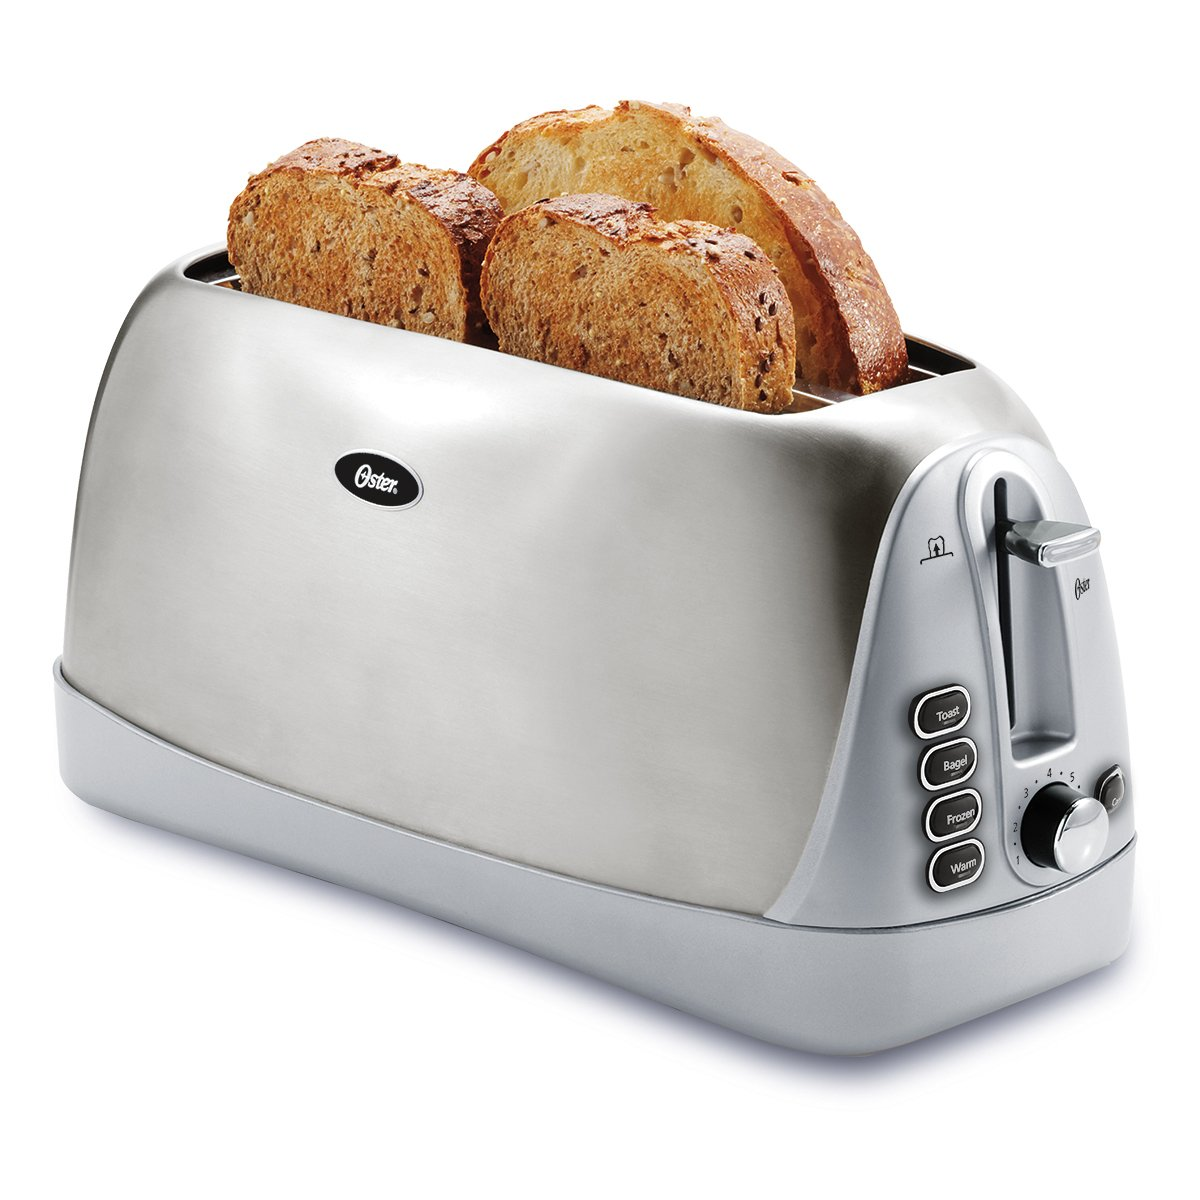 Oster Long Slot 4-Slice Toaster, Stainless Steel (TSSTTR6330-NP)